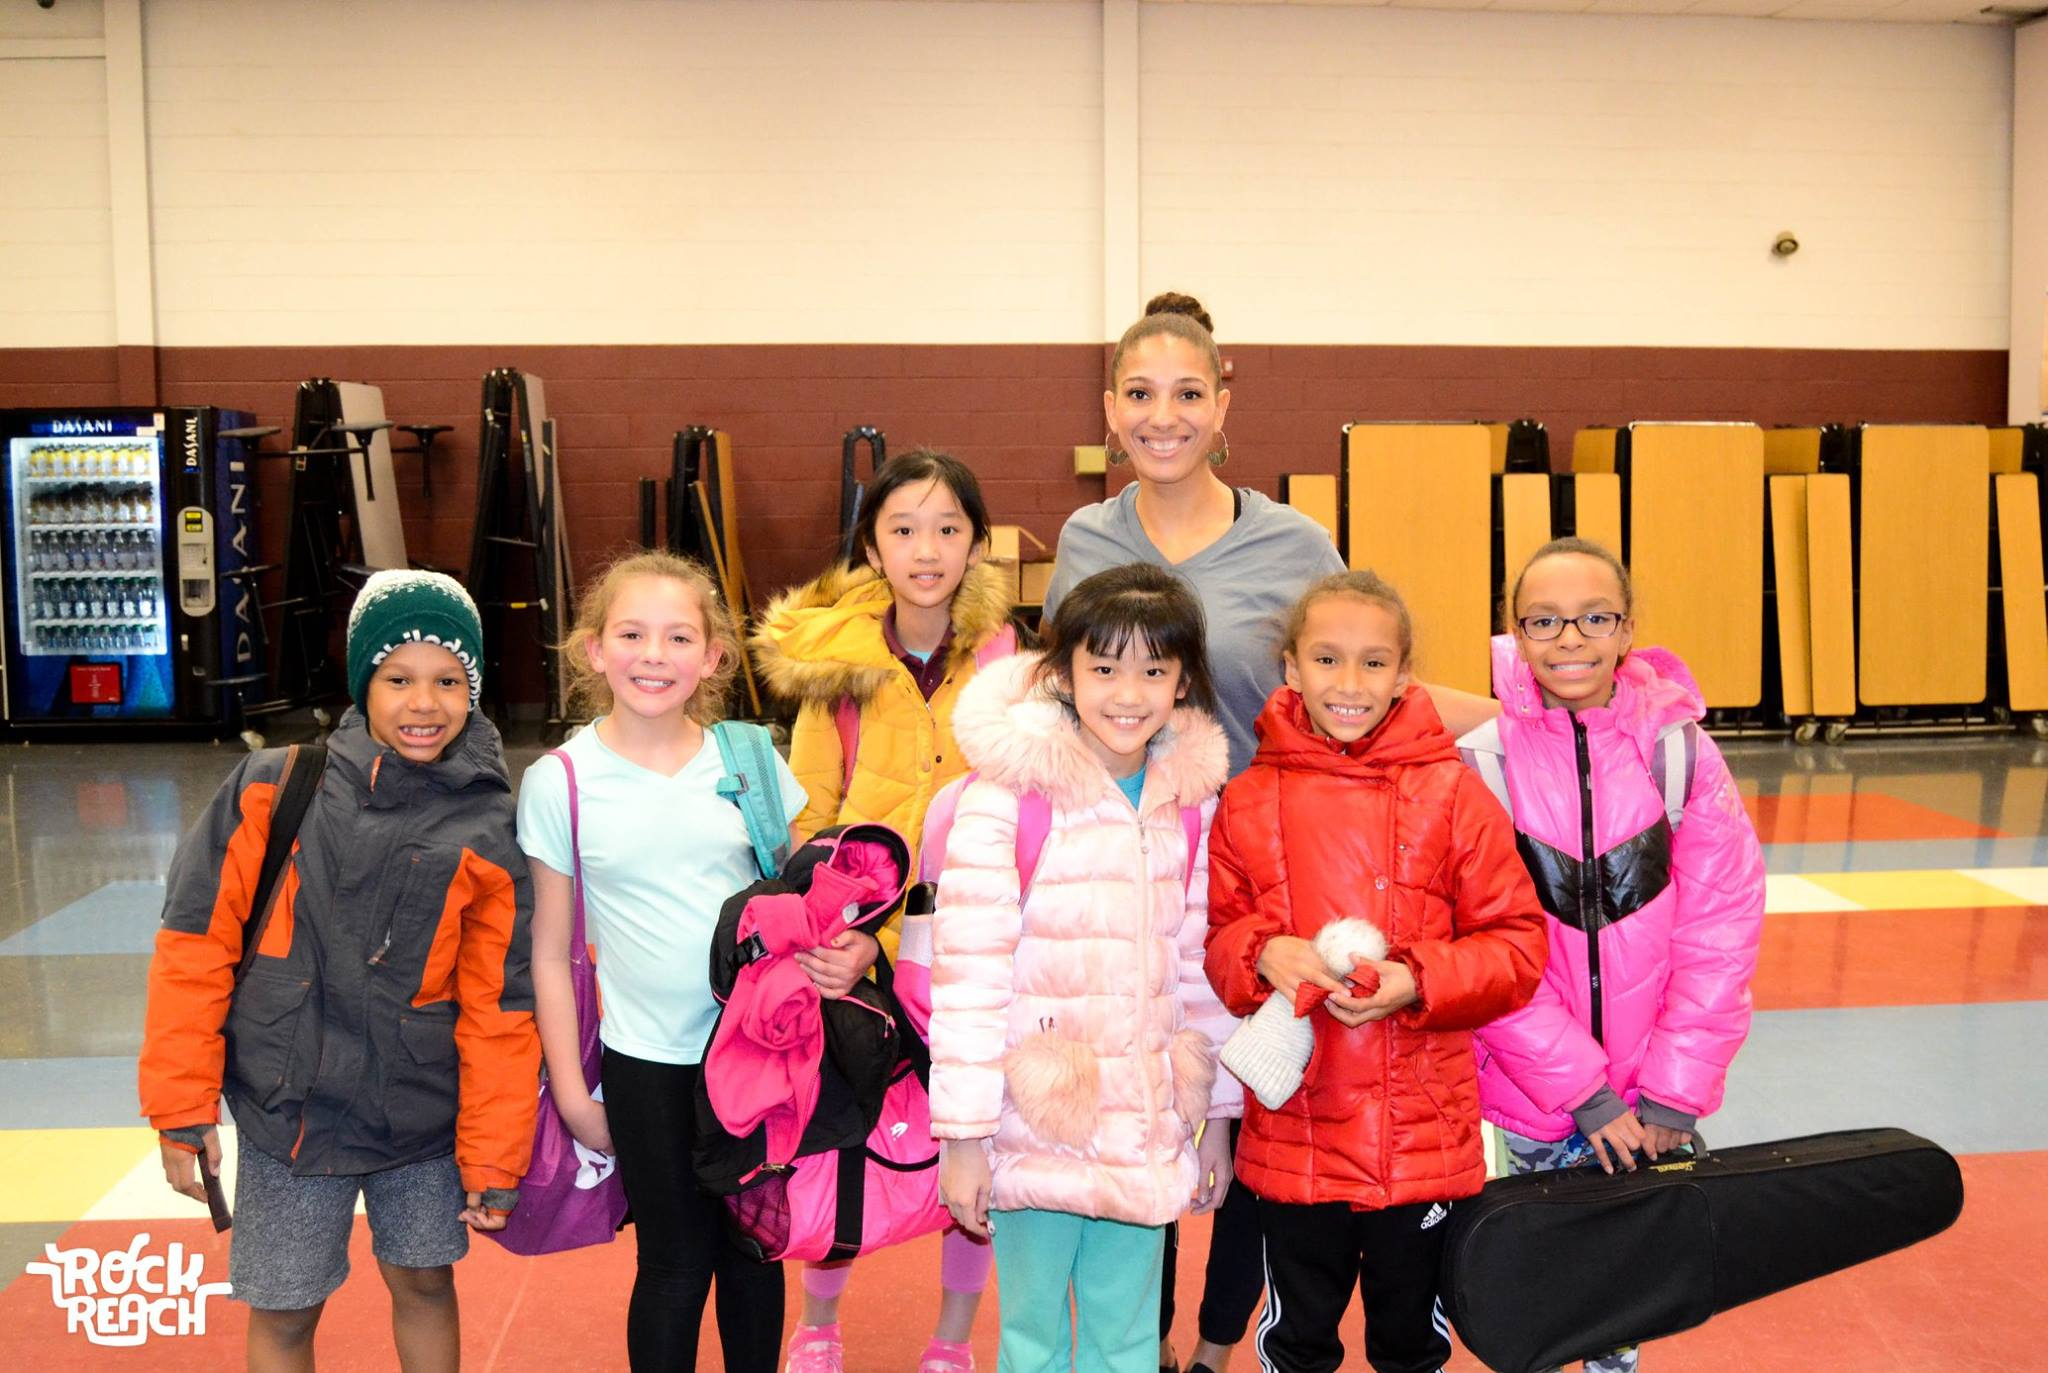 Theresa Pelicata with her RockReach students at New Foundations Charter School